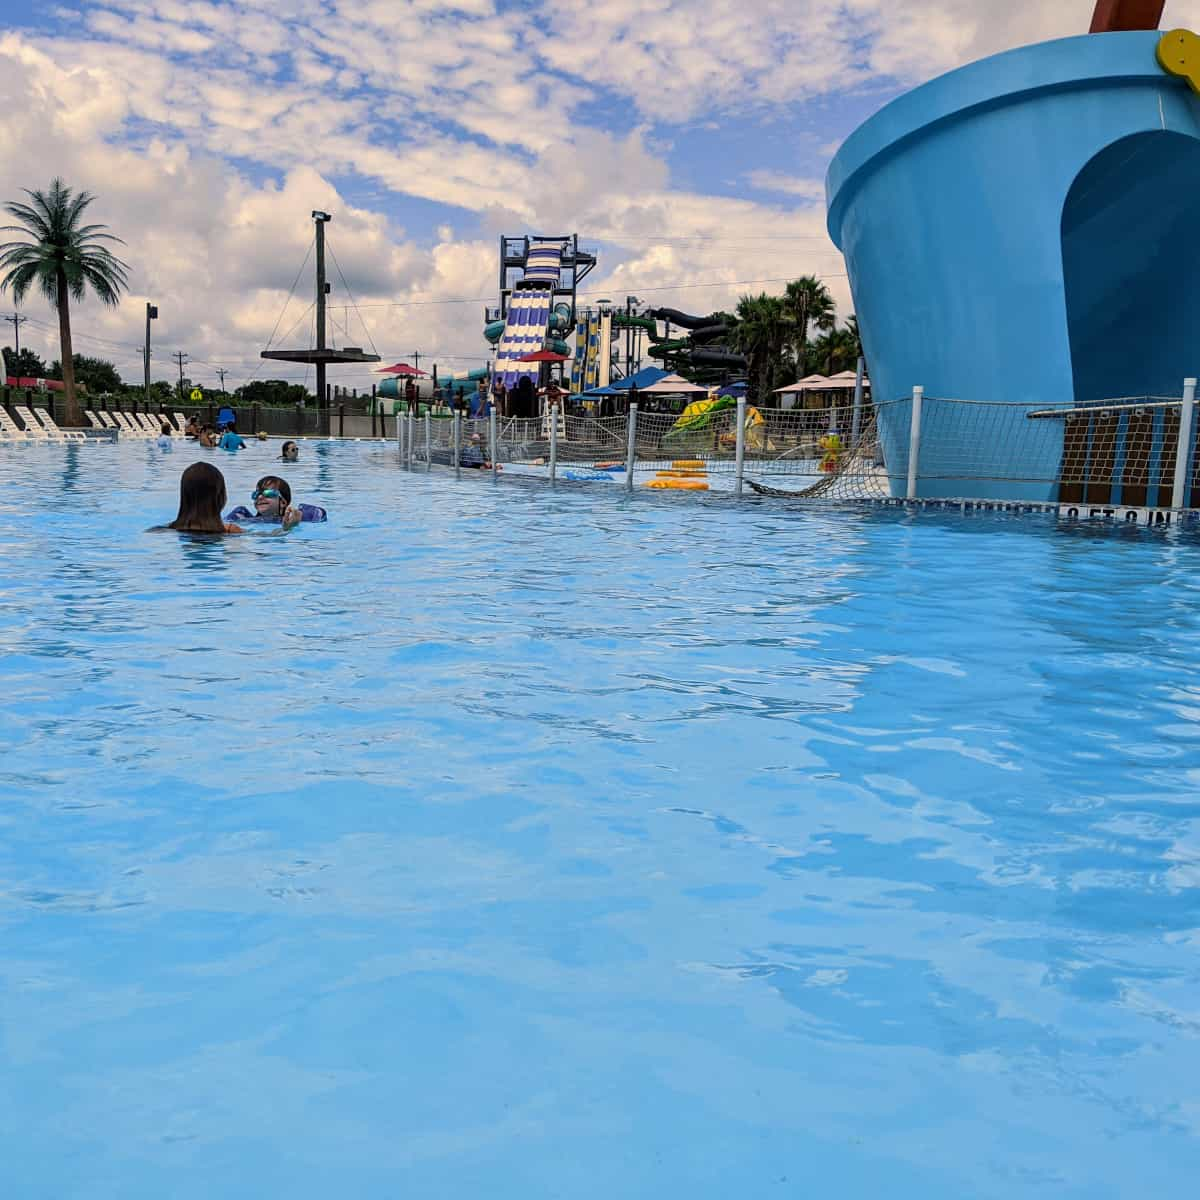 Splashway Waterpark Pool